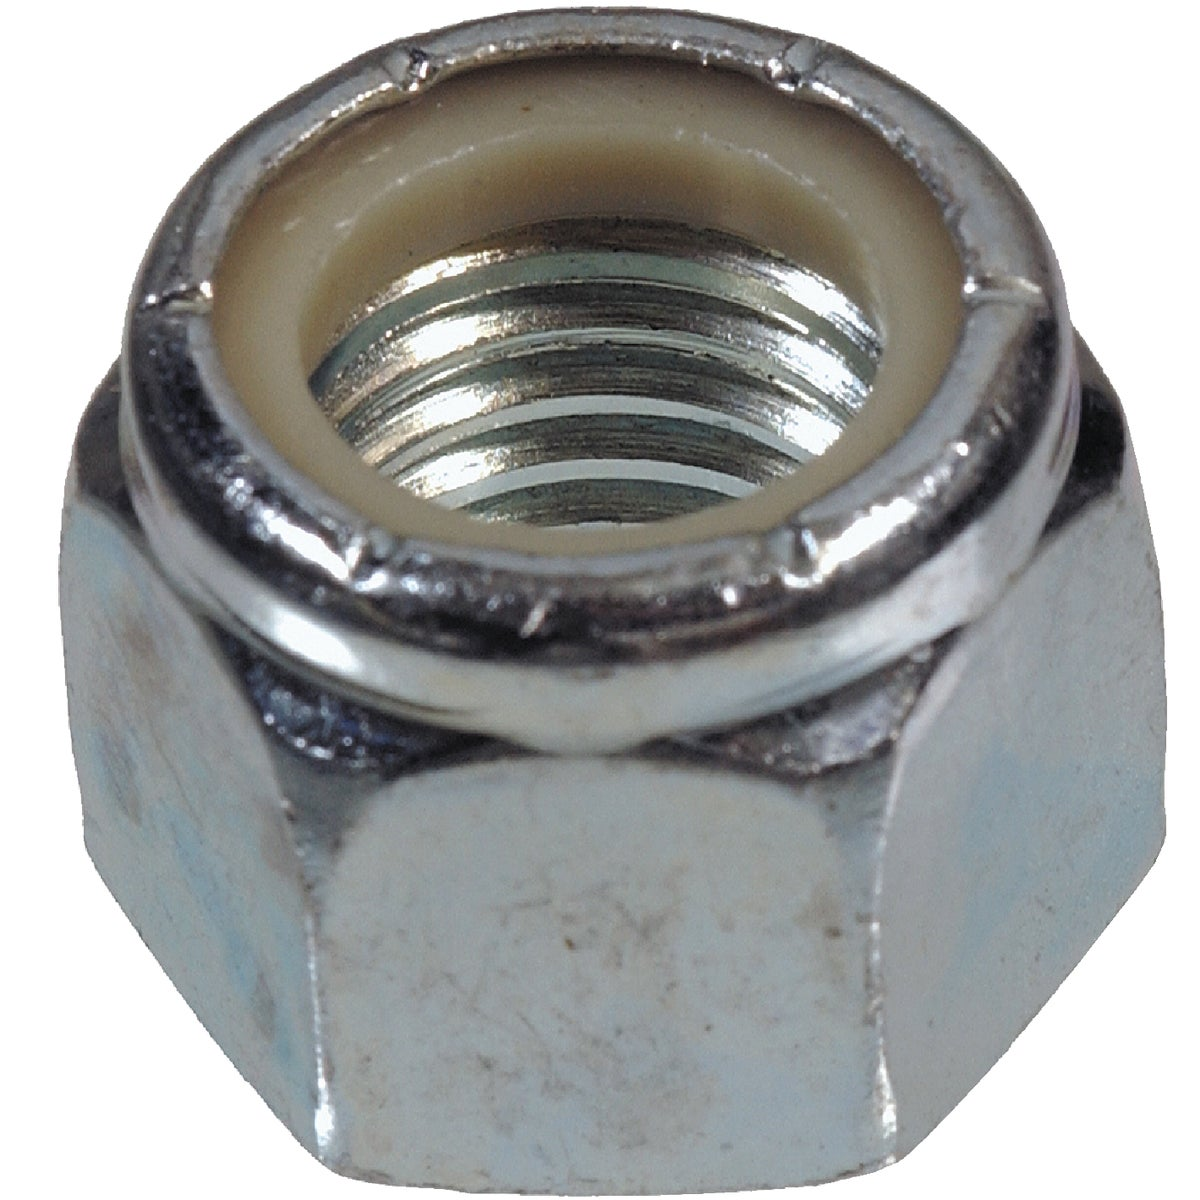 1/4-20 NYLON LOCK NUT - 180147 by Hillman Fastener